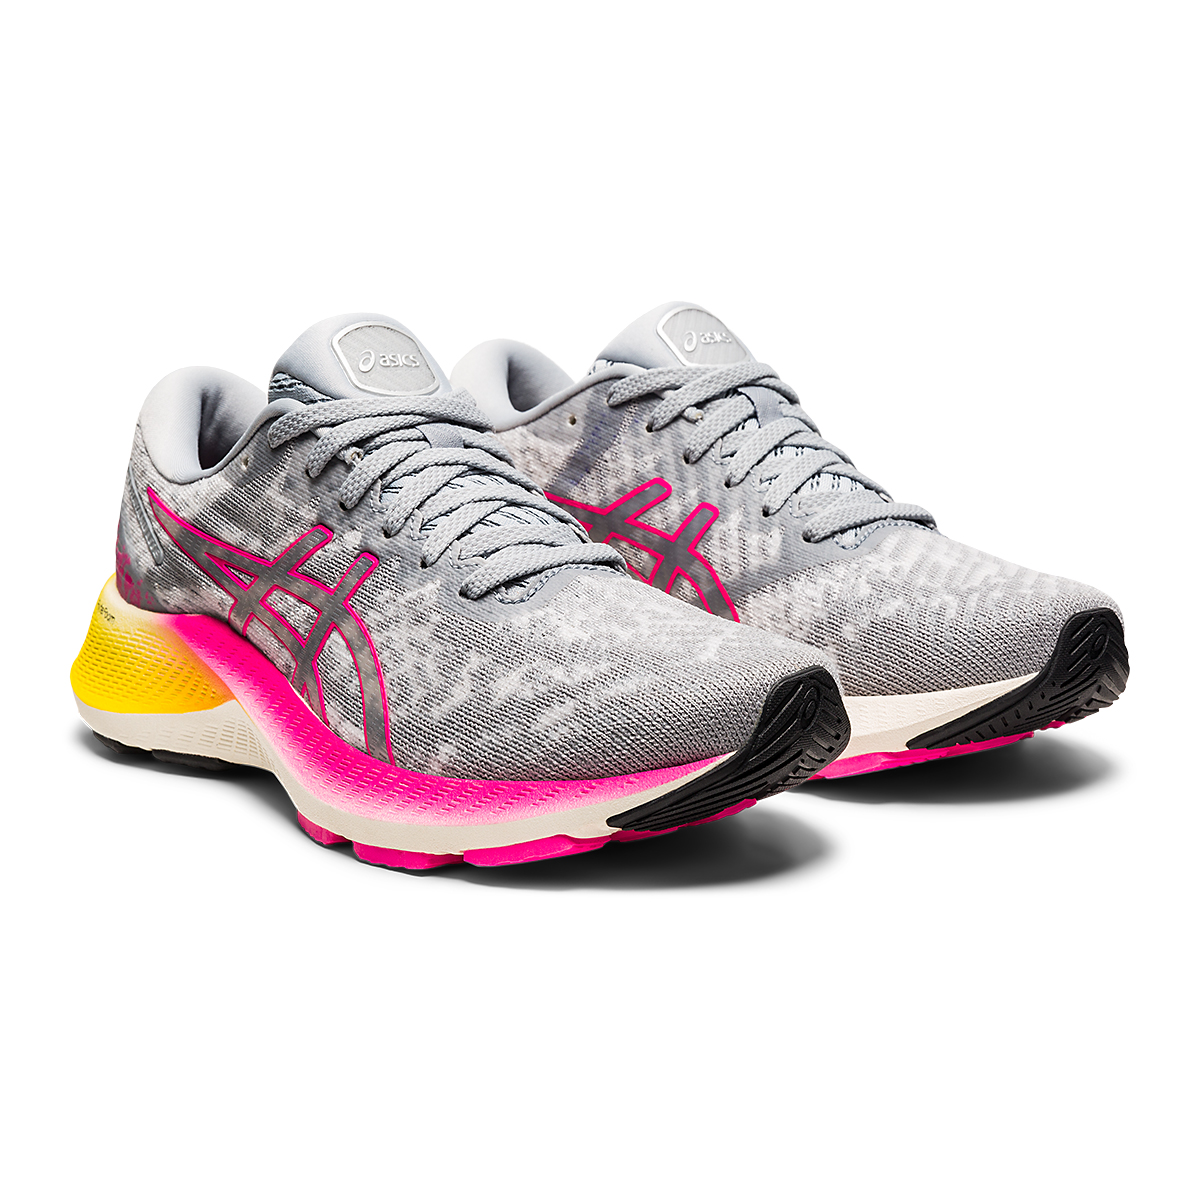 Women's Asics GEL-Kayano Lite Running Shoe - Color: Piedmont Grey/Sheet Rock - Size: 5 - Width: Regular, Piedmont Grey/Sheet Rock, large, image 3